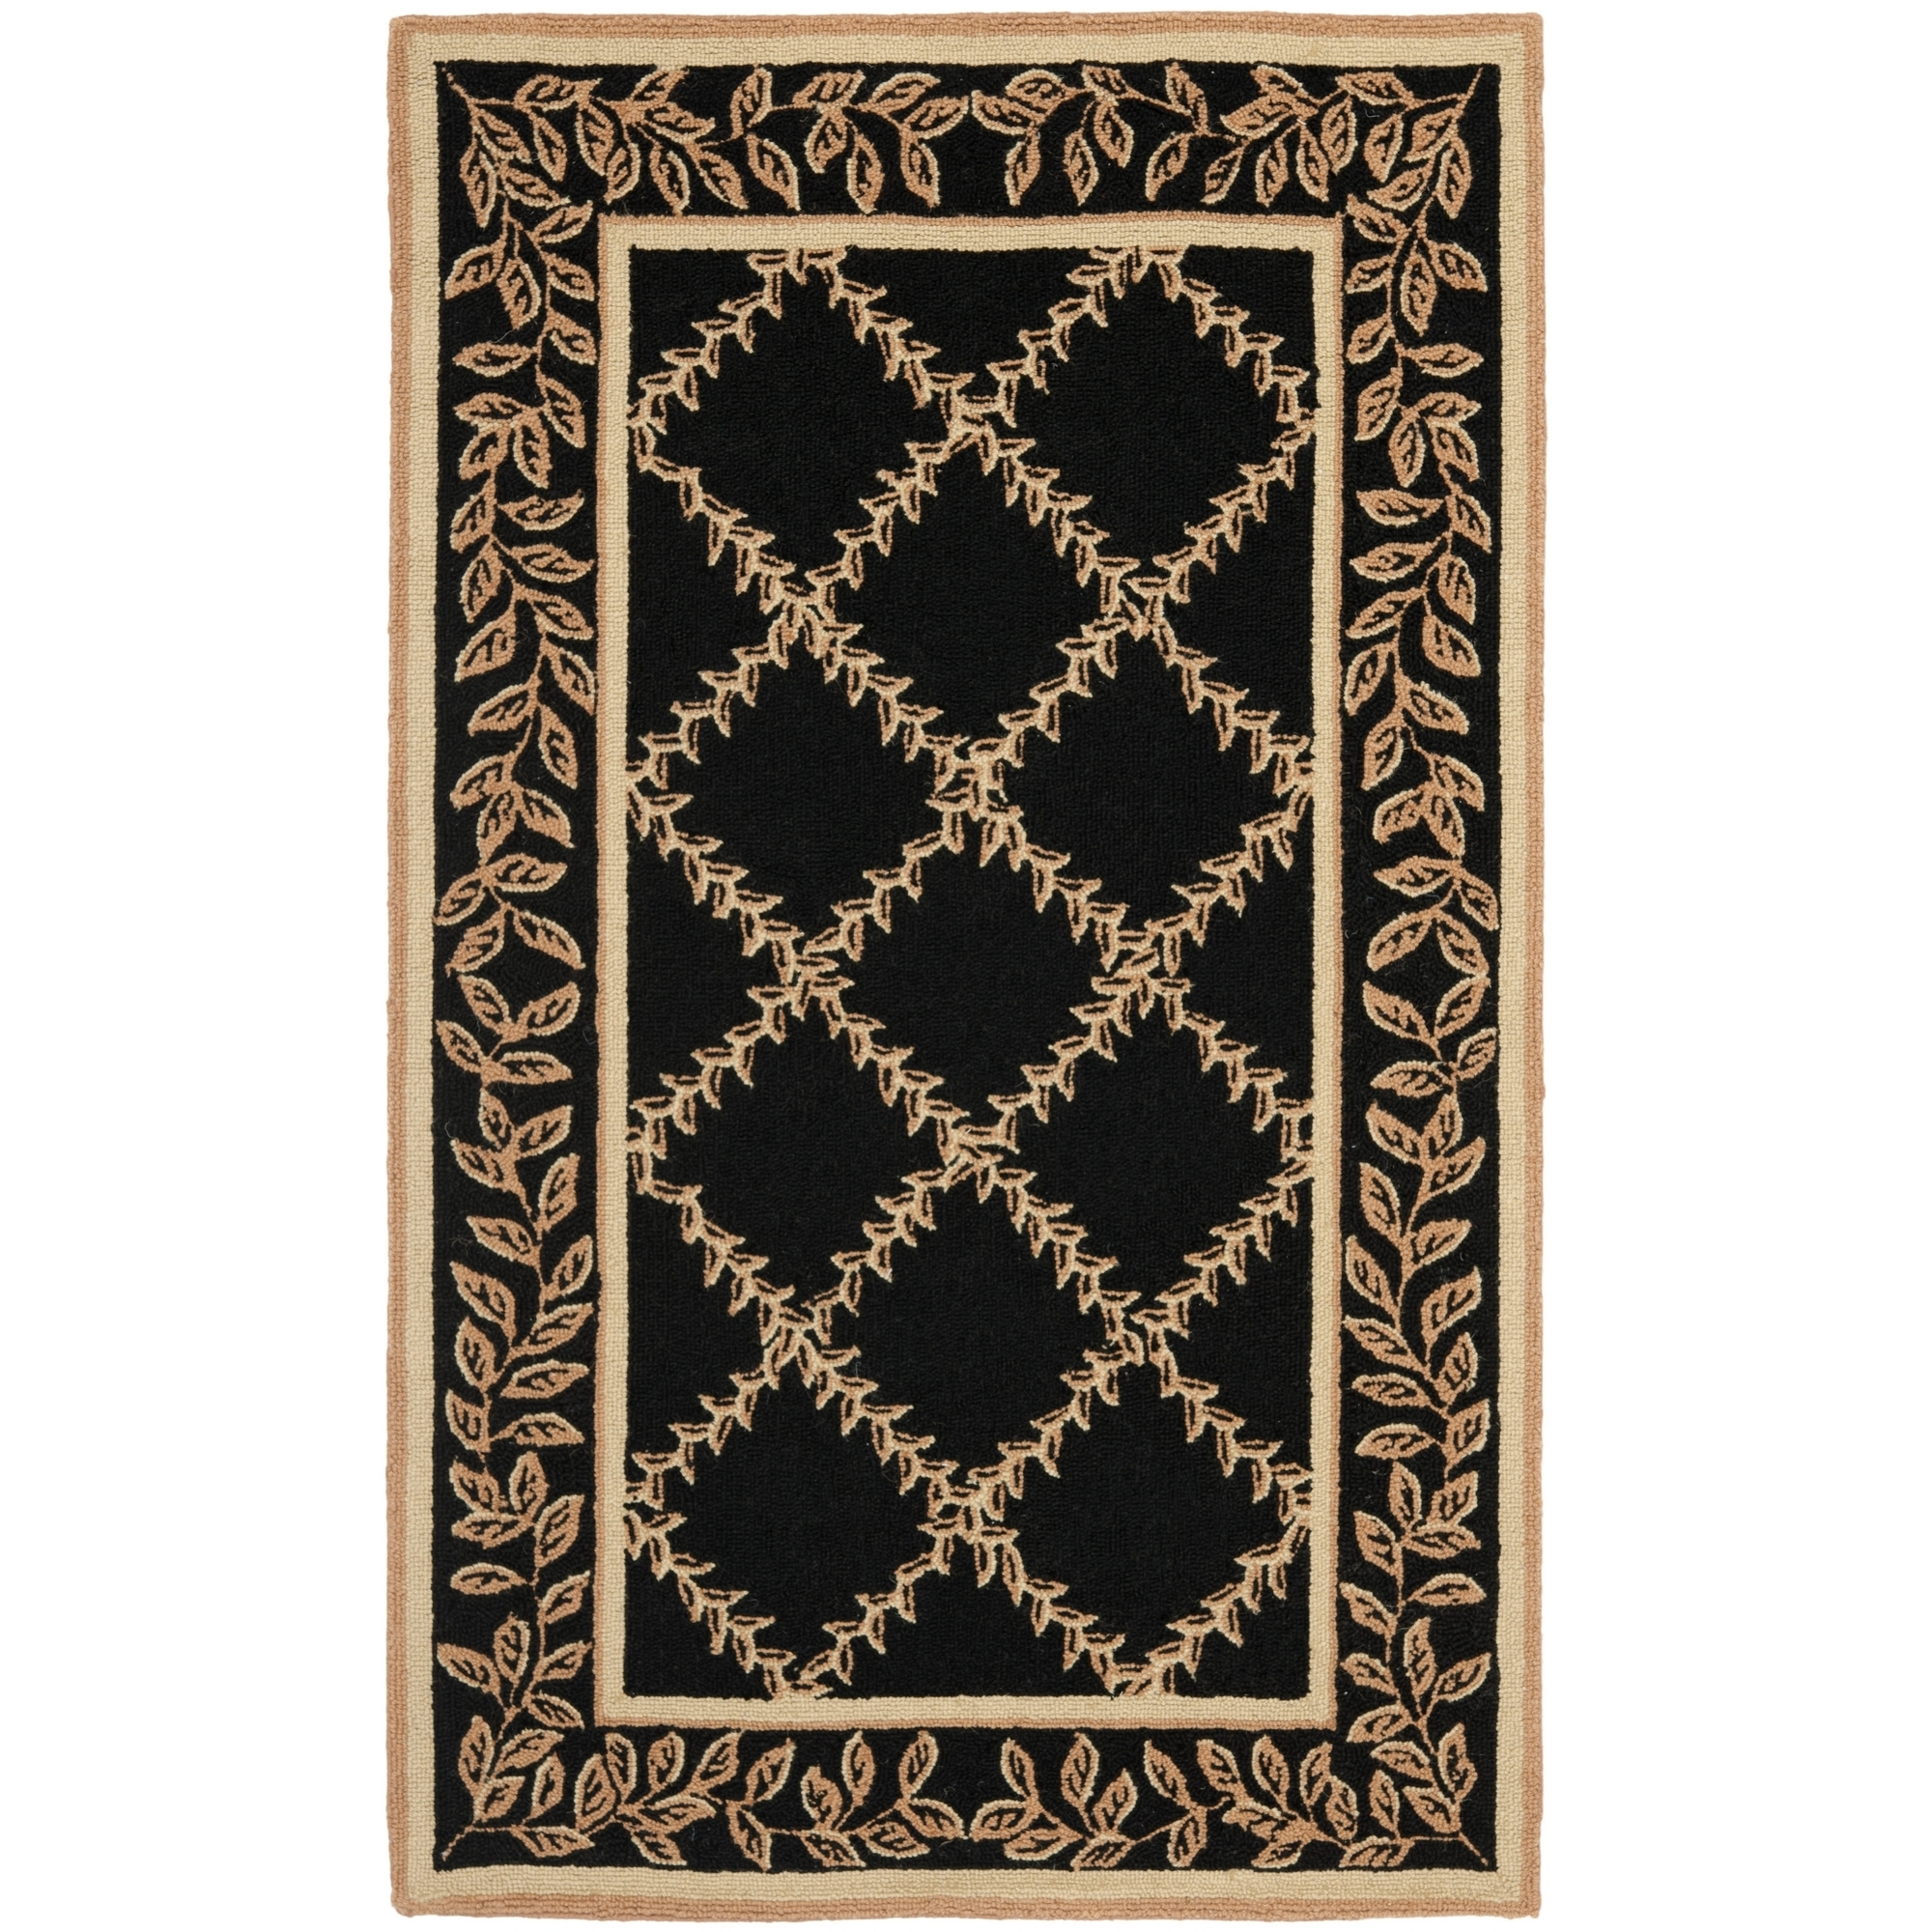 Safavieh Chelsea Hand Hooked Black Beige Wool Area Rugs Hk230d Within Hand Hooked Wool Area Rugs (#11 of 15)